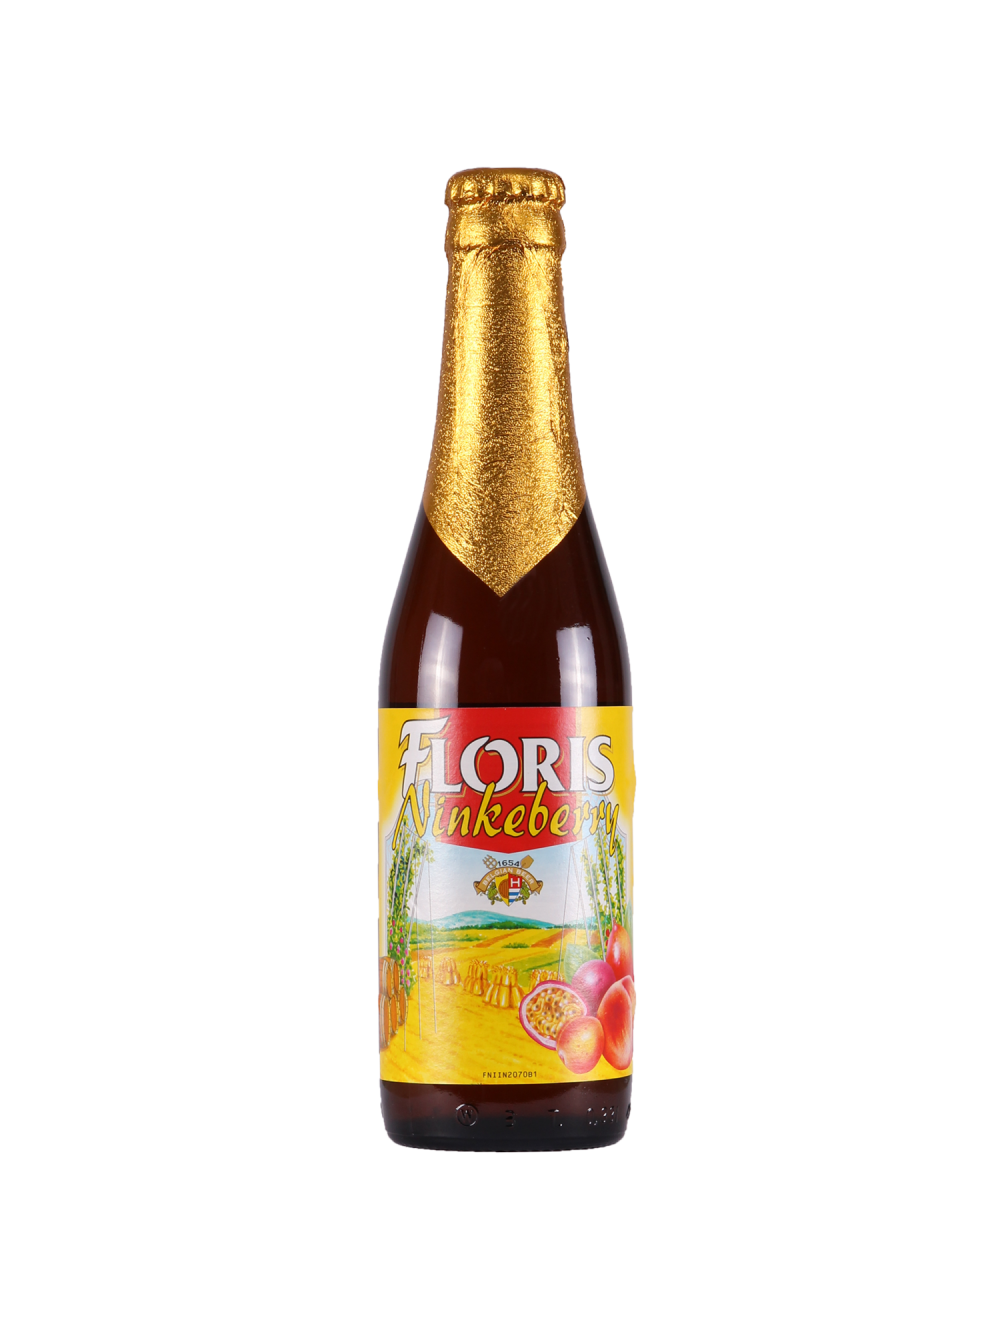 Floris Ninkeberry 3.6% 330ml